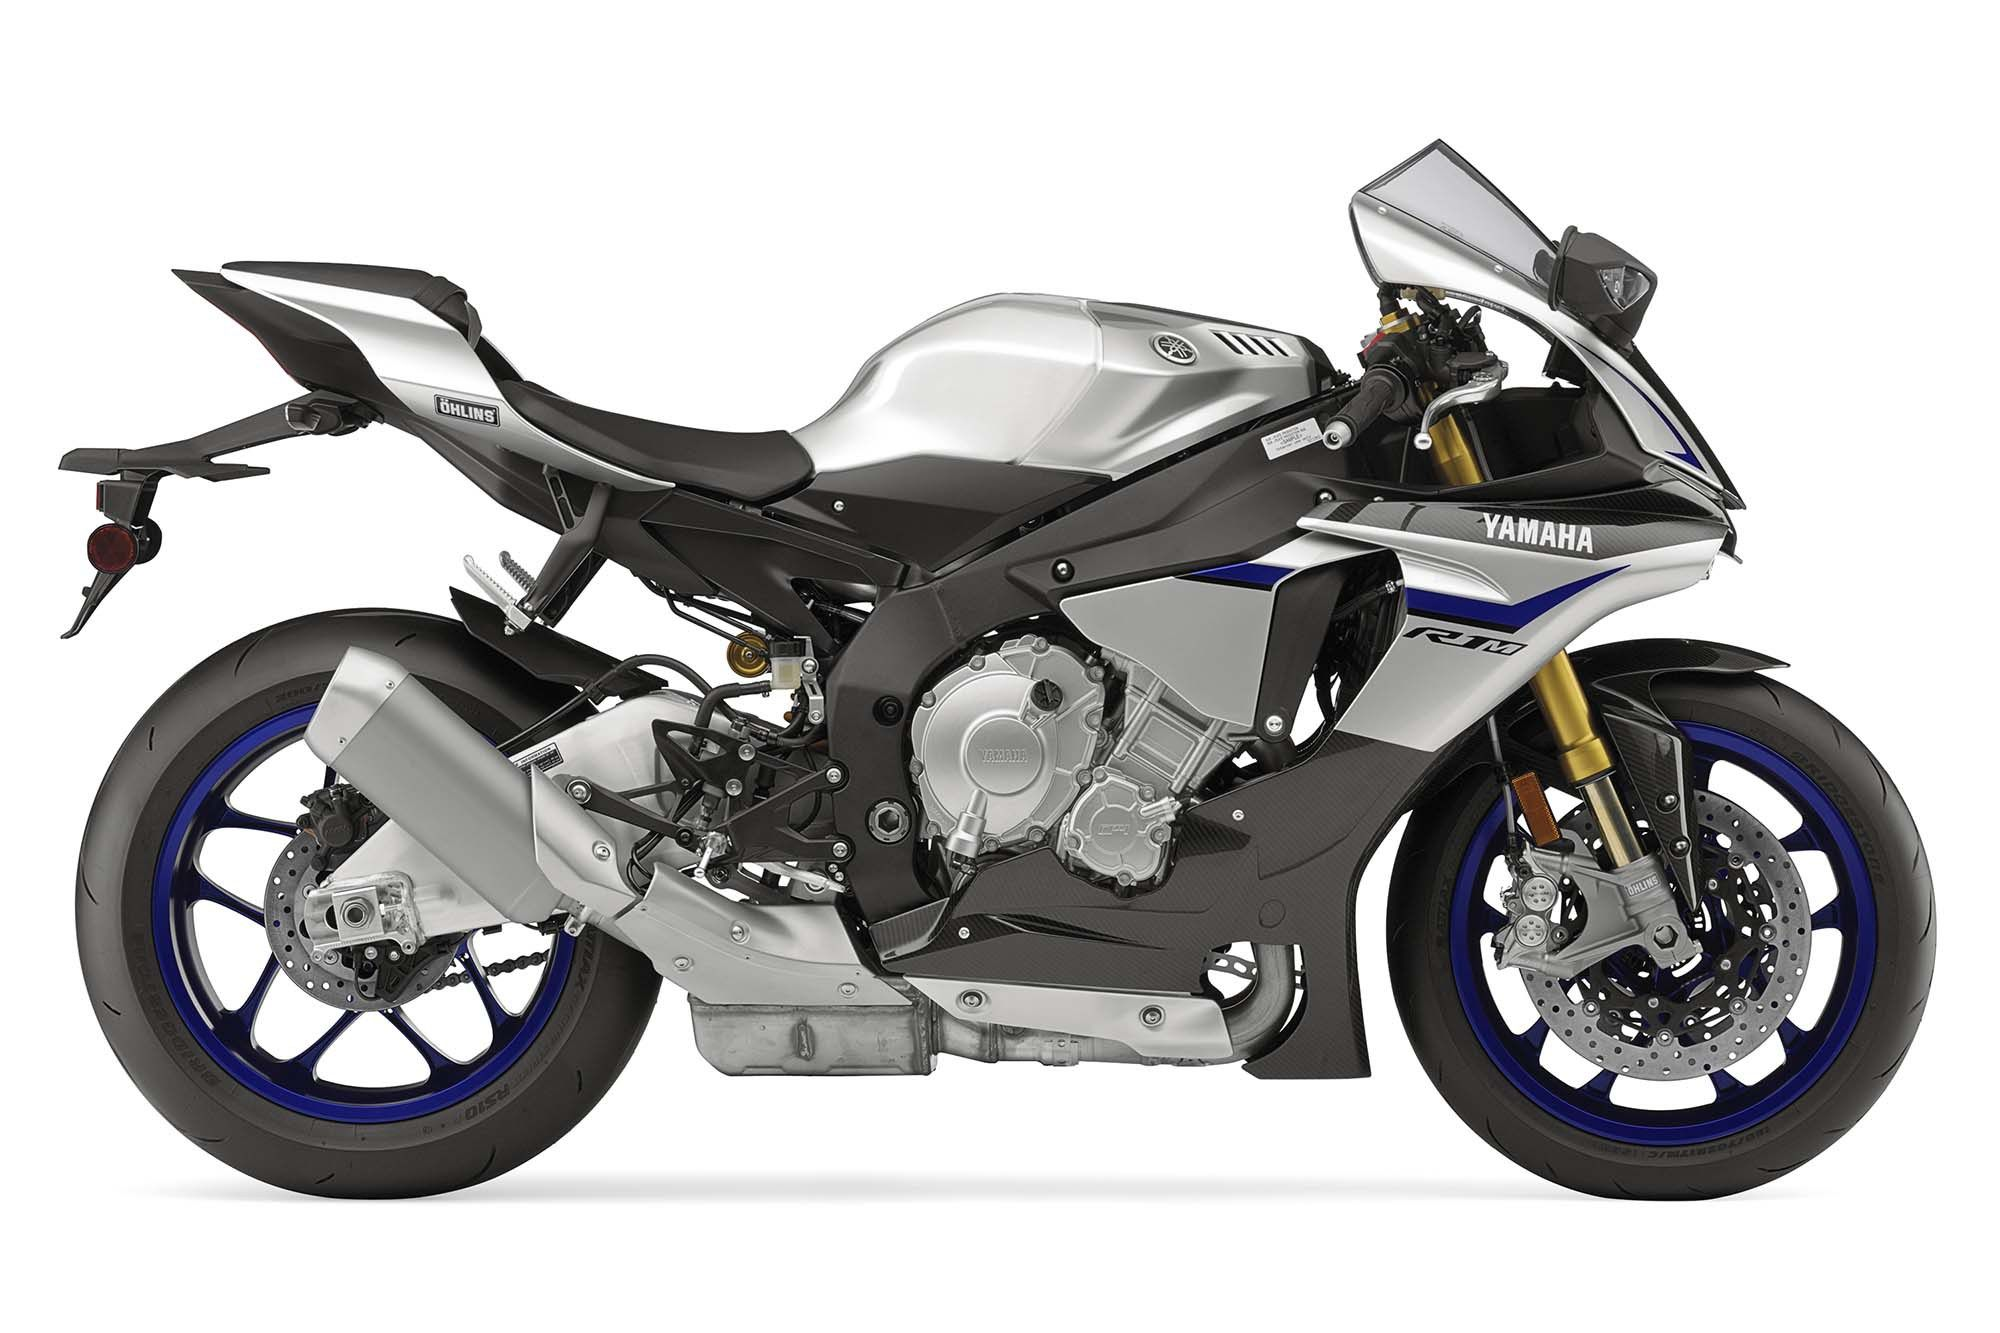 2015 Yamaha YZFR1M An Exclusive Track Weapon Motor